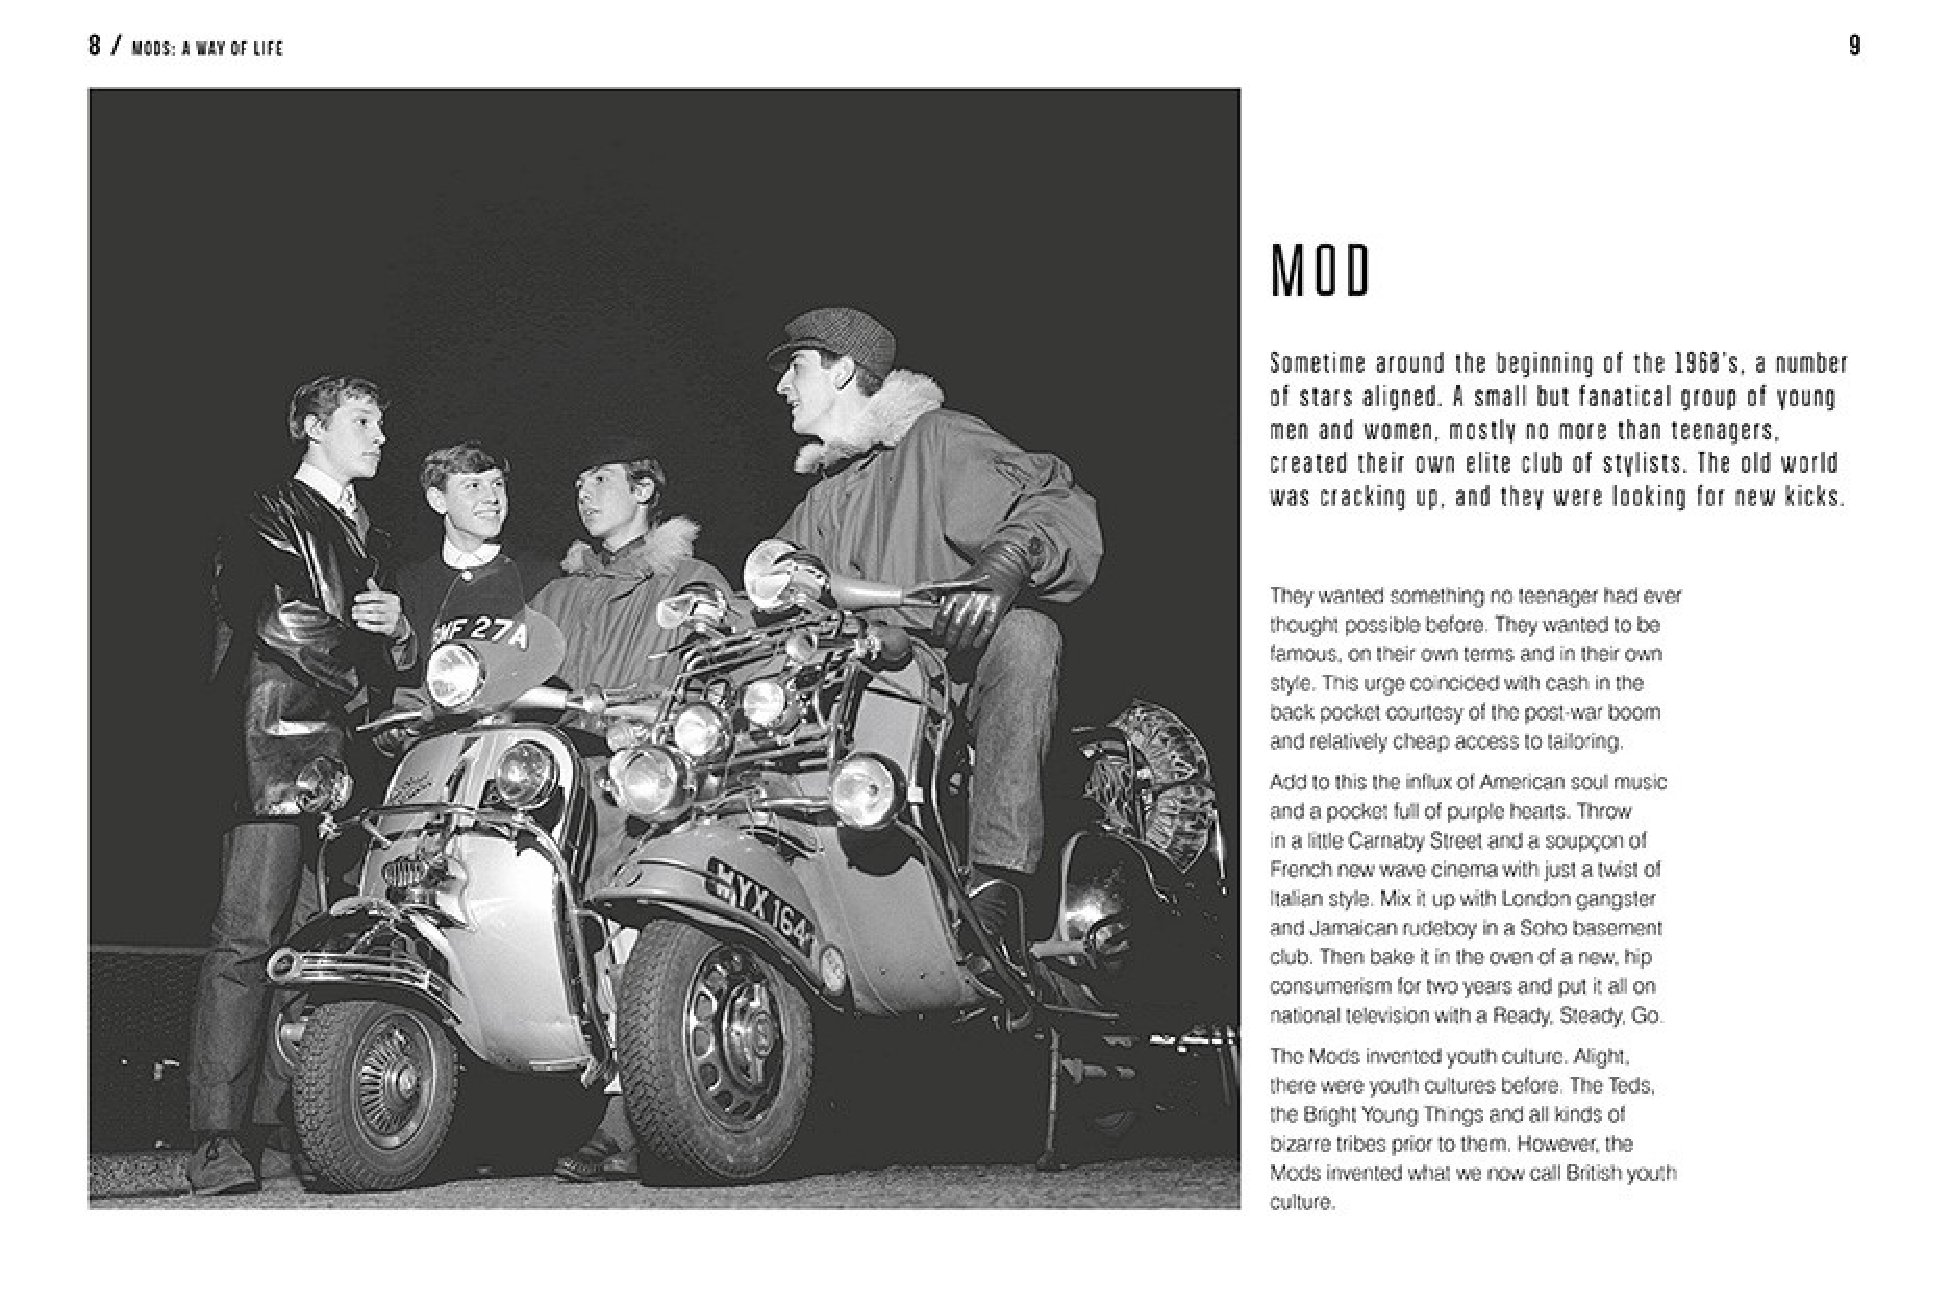 Buch, Mods - A Way Of Life - Abrams & Chronicle Books - Bild 3